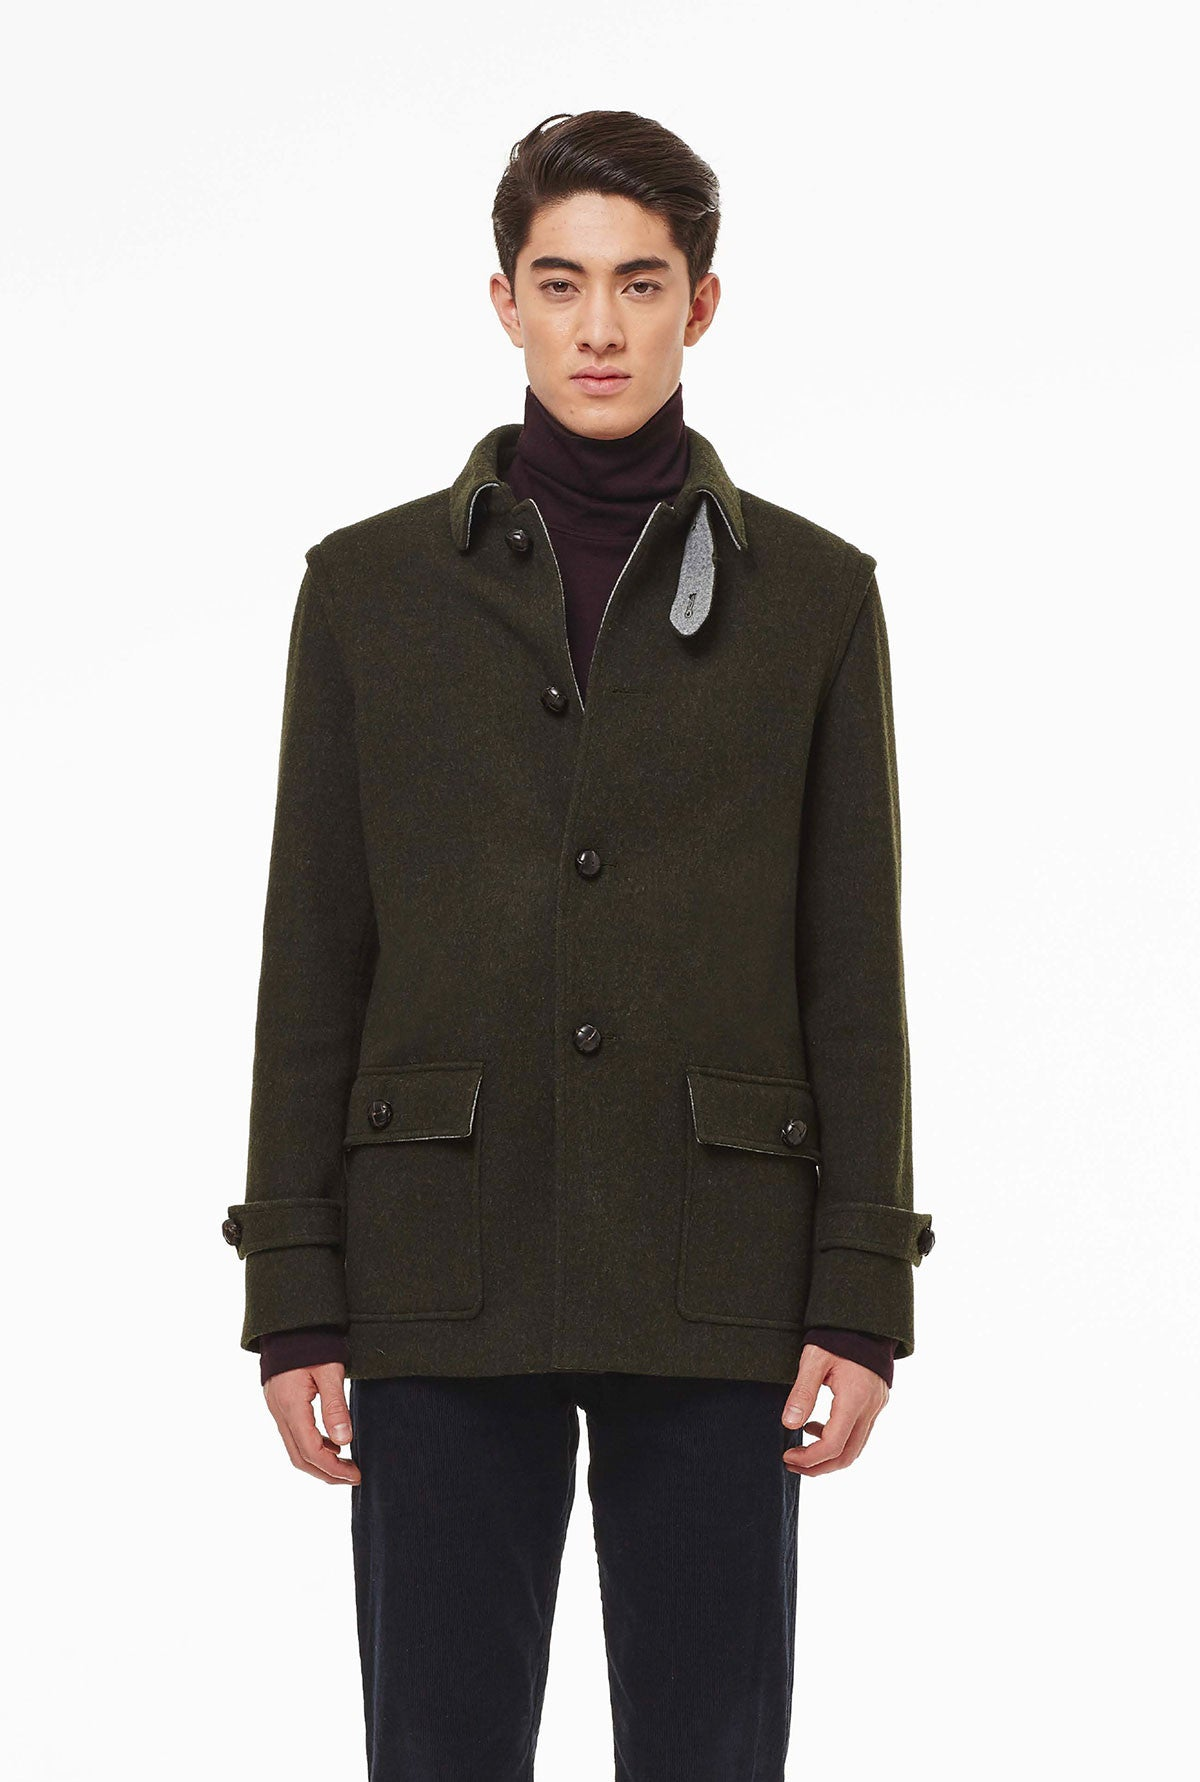 Hunting jacket in loden fabric.